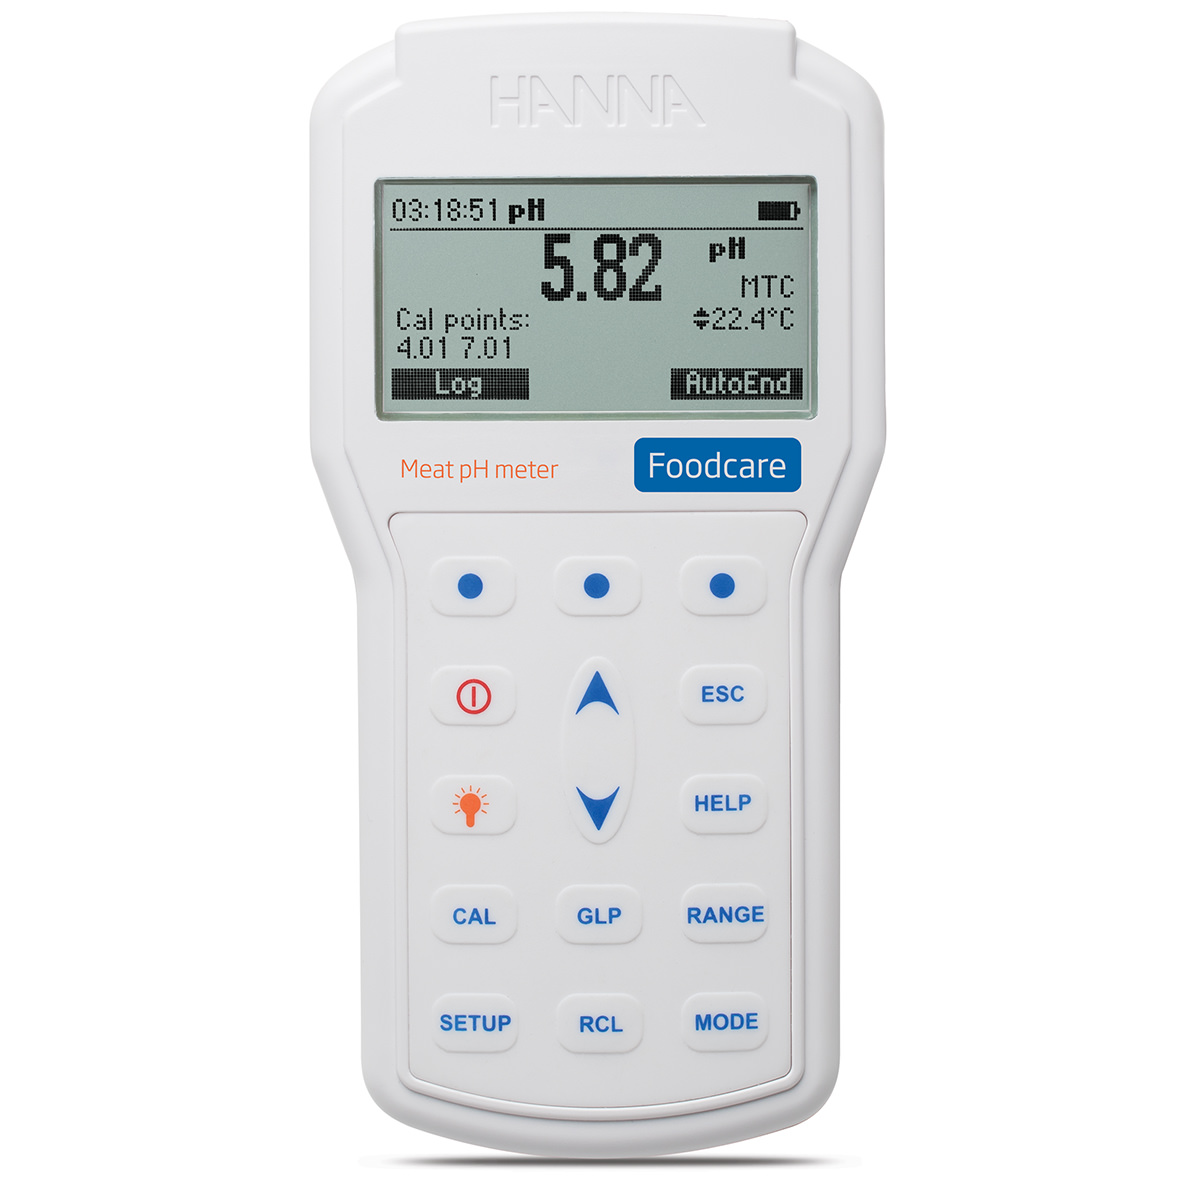 Professional Portable Meat pH Meter - HI98163